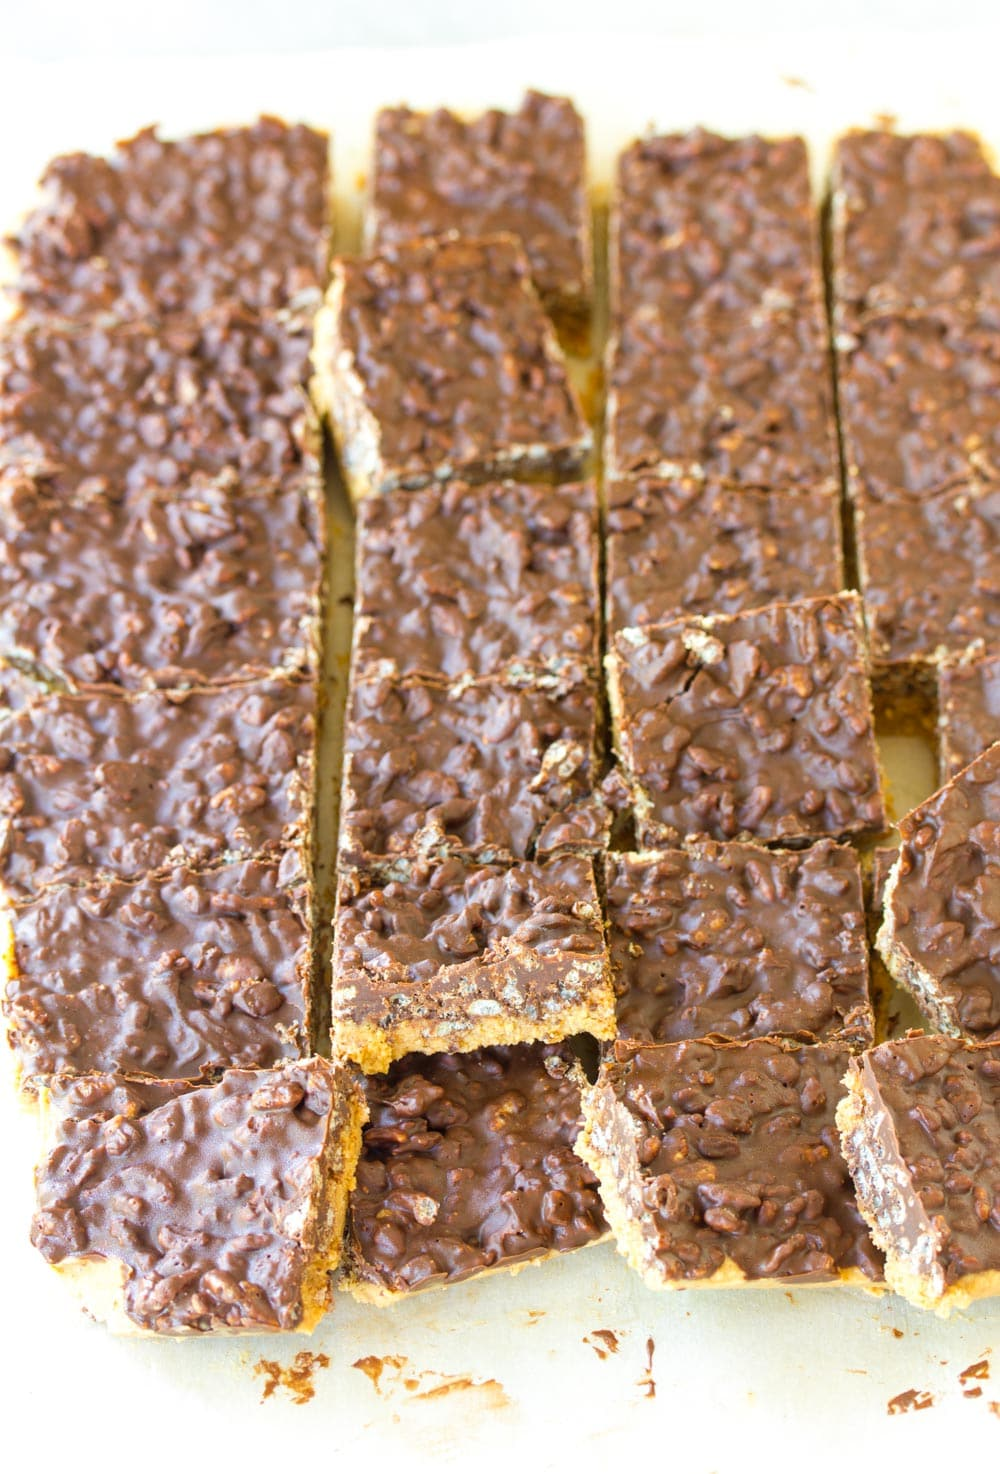 Awesome Crispy No-Bake Chocolate Peanut Butter Bars Recipe #ASpicyPerspective